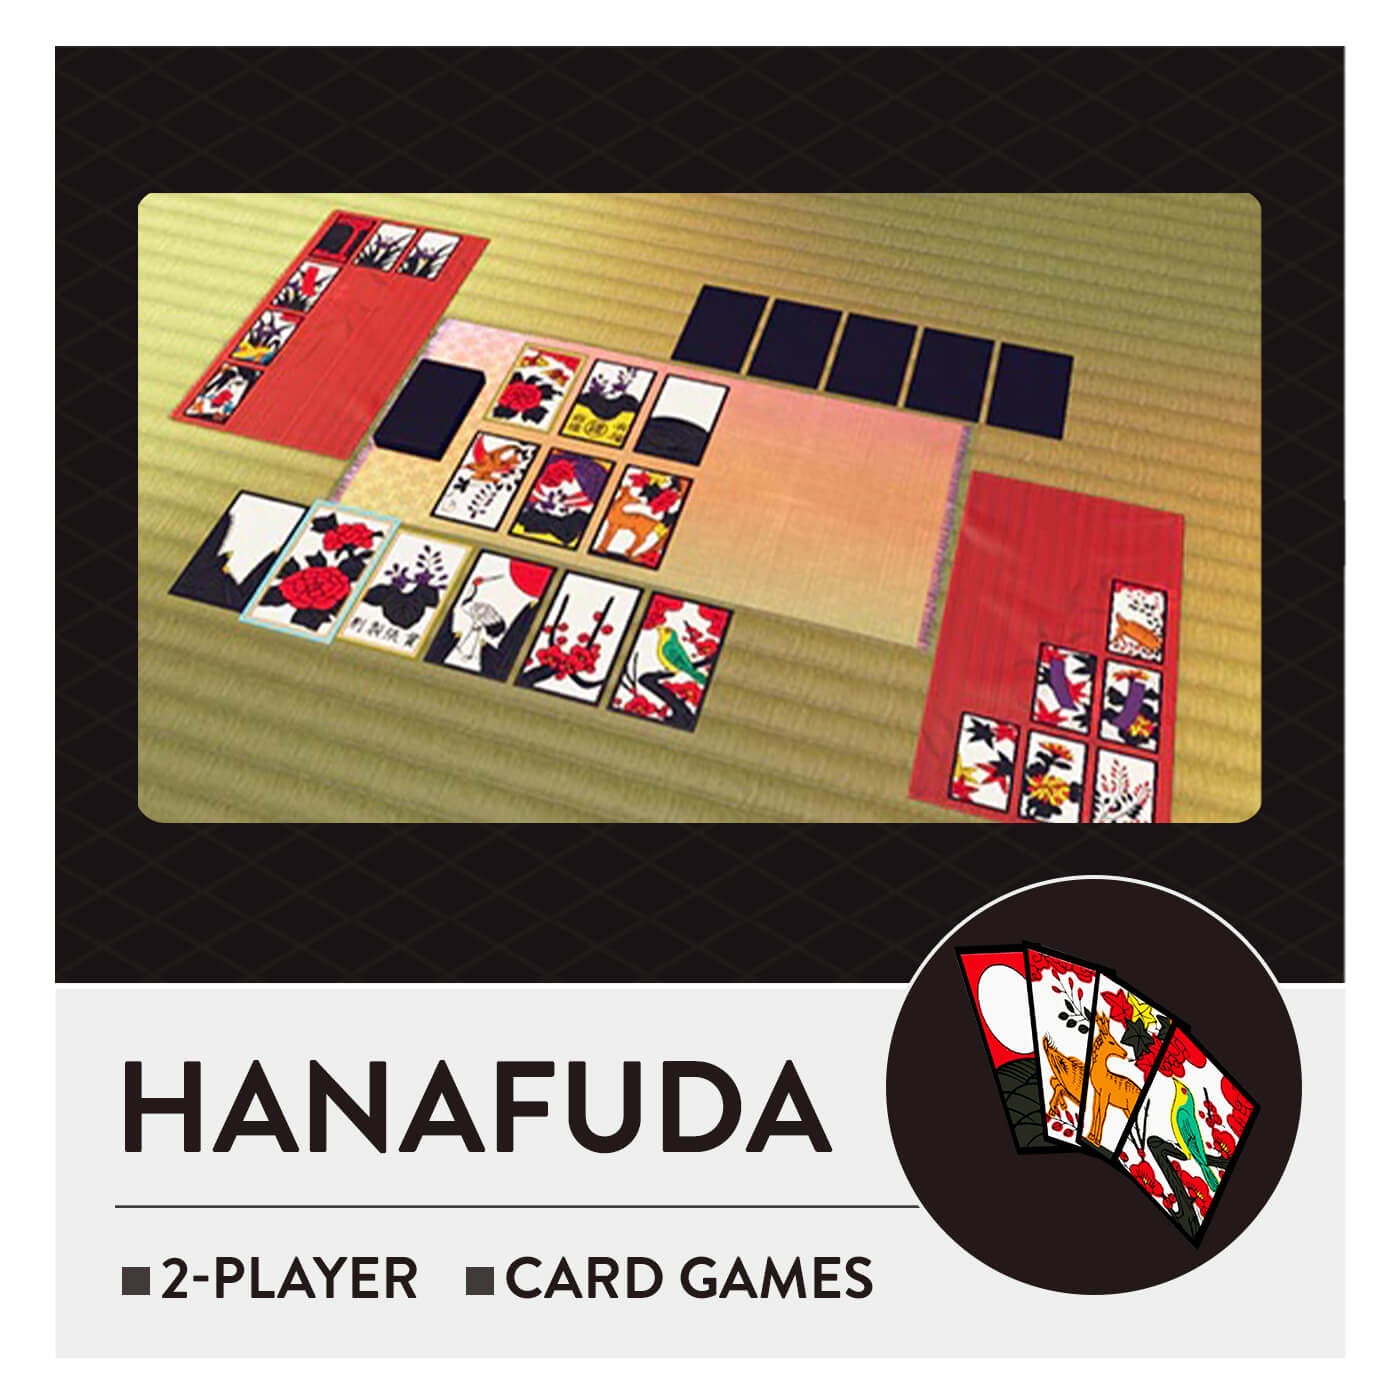 51 Worldwide Games - Hanafuda